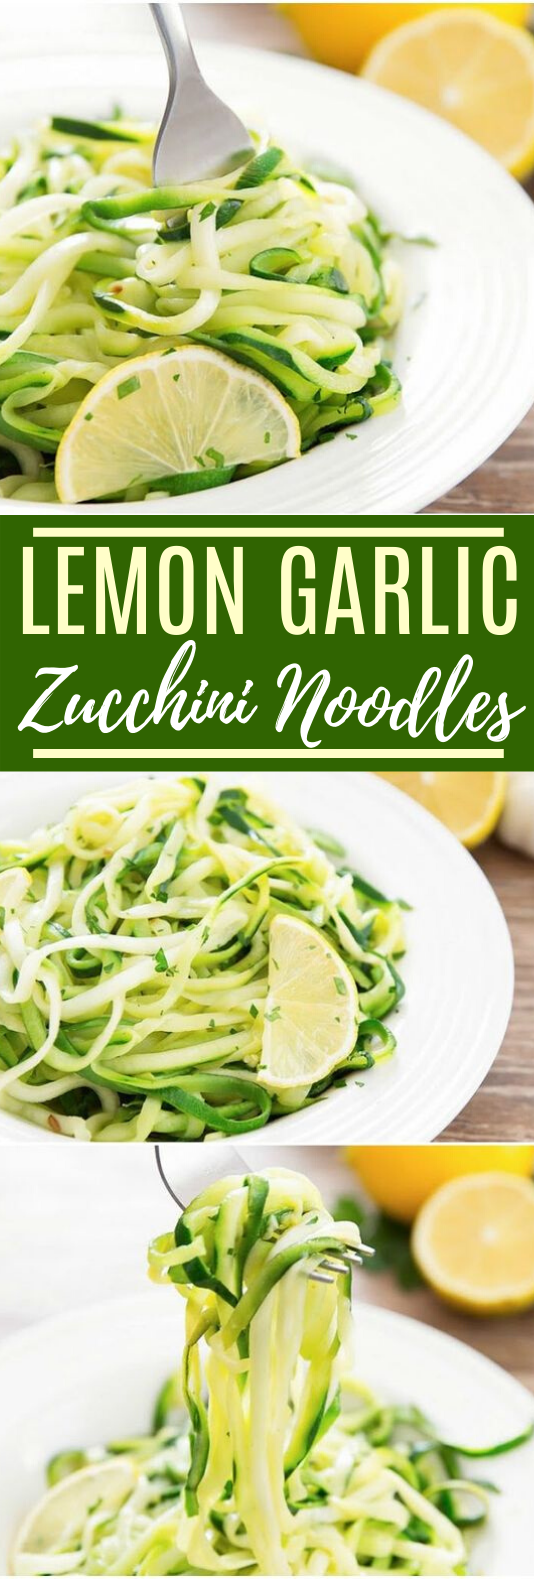 Lemon Garlic Zucchini Noodles #vegan #dinner #healthy #plantbased #vegetarian